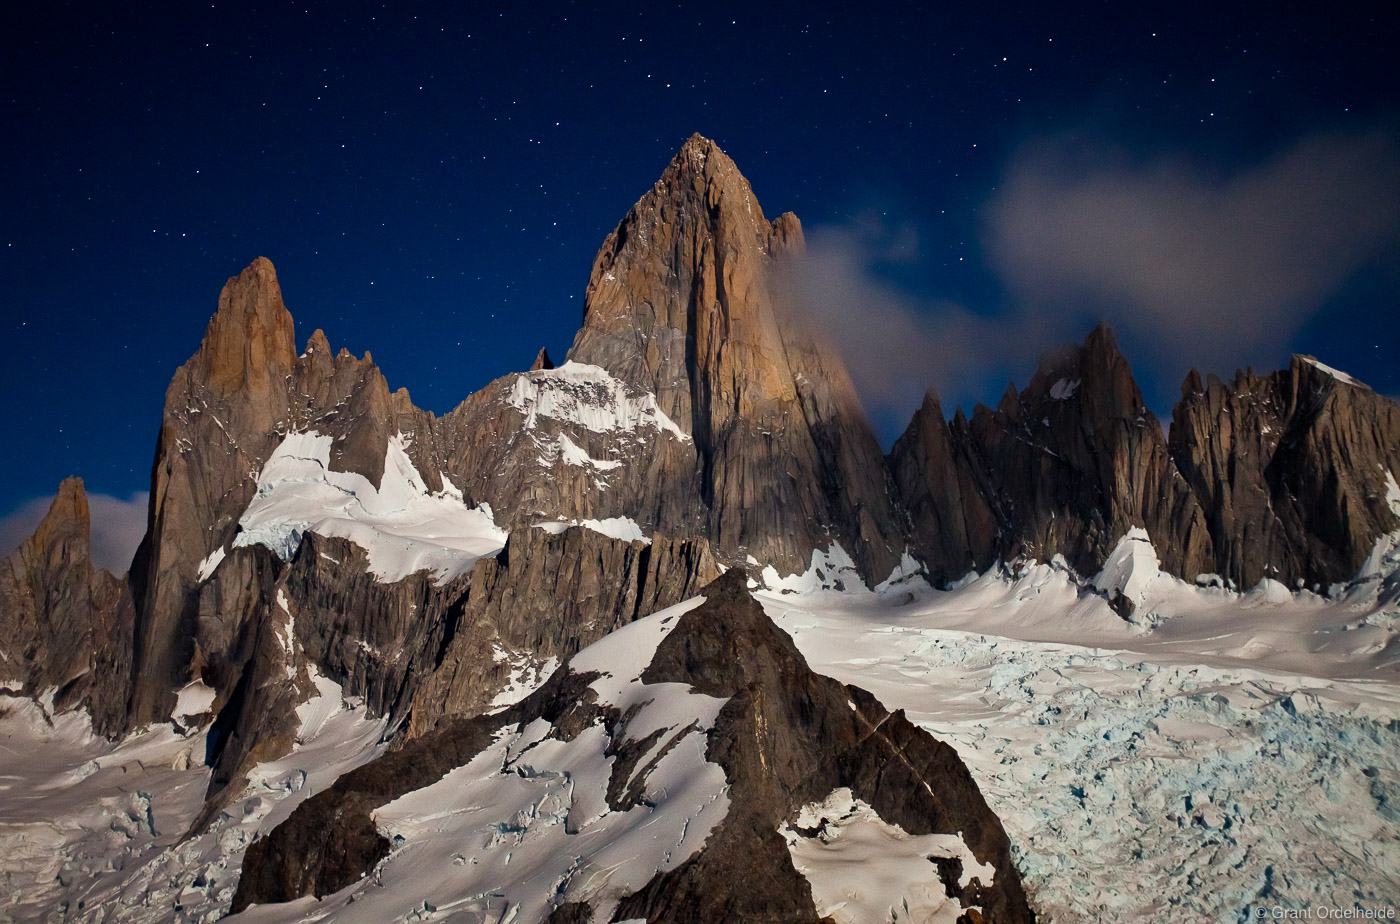 Moonlight illuminates Mount Fitzroy from the summit of Cerro Madsen.